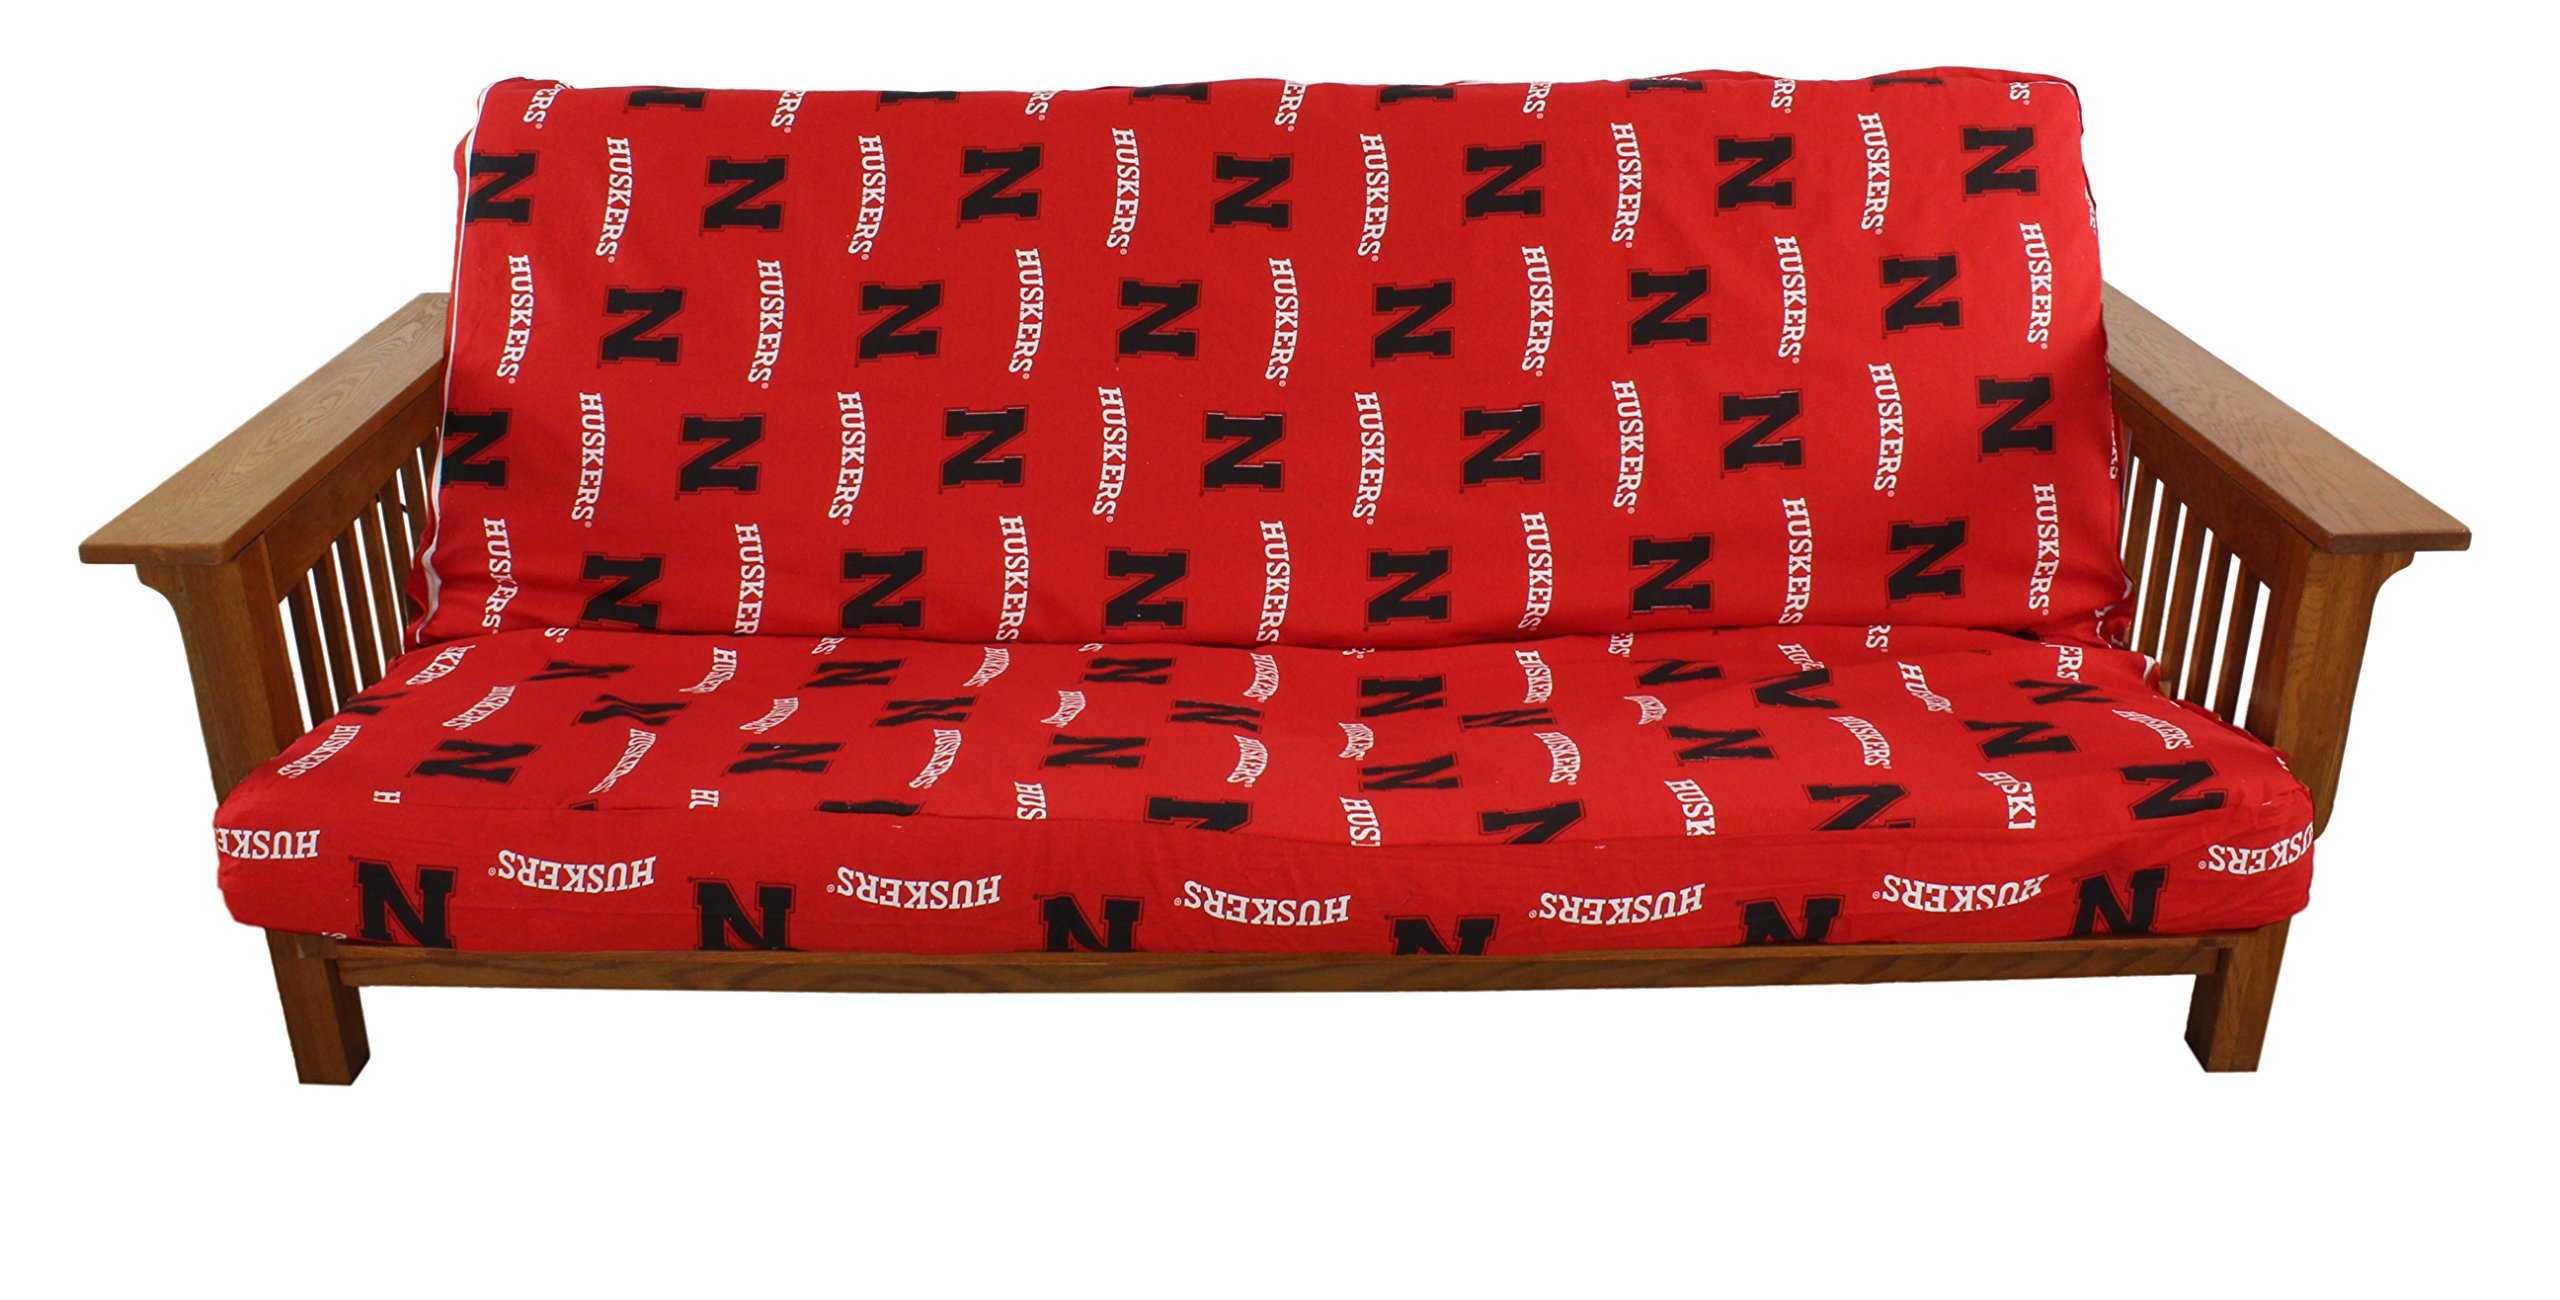 College Covers Nebraska Cornhuskers Futon Cover - Full size fits 6 and 8 inch mats